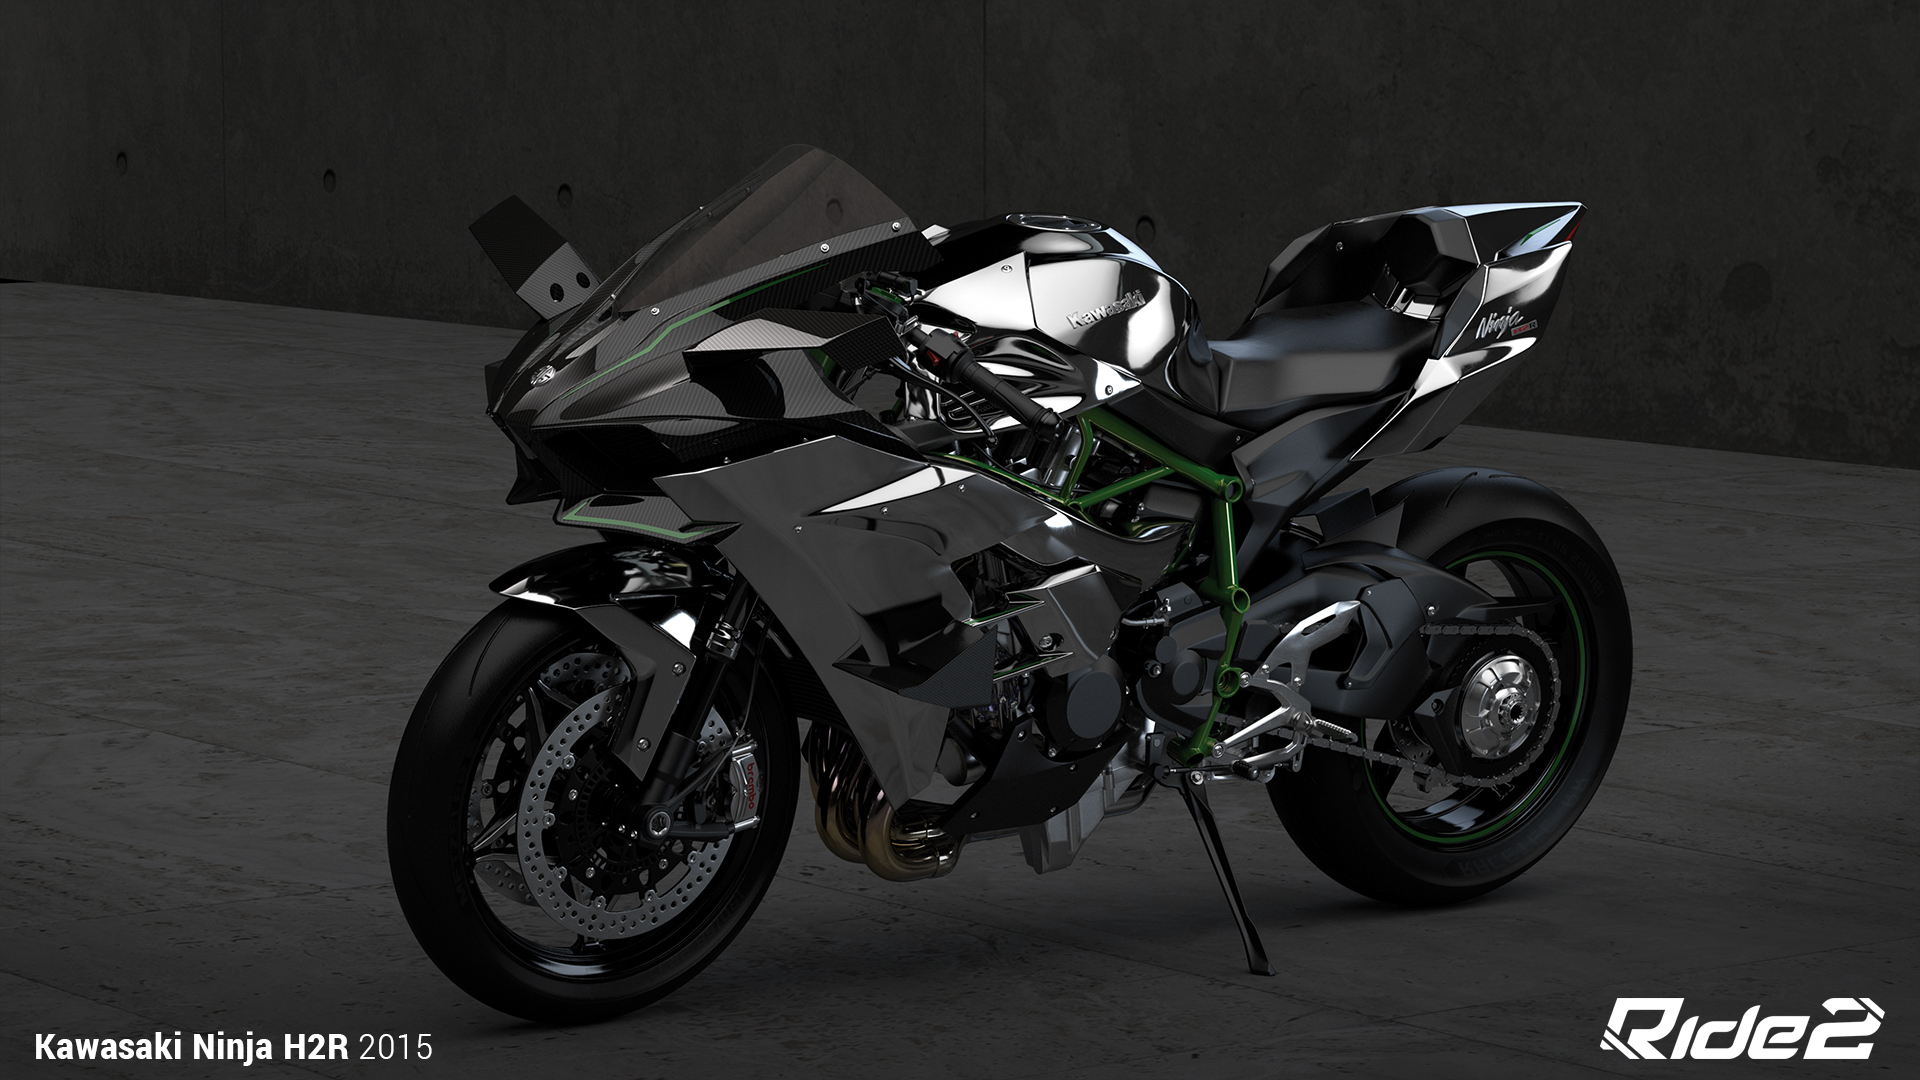 2015 Kawasaki Ninja H2R Full HD Wallpaper And Background Image